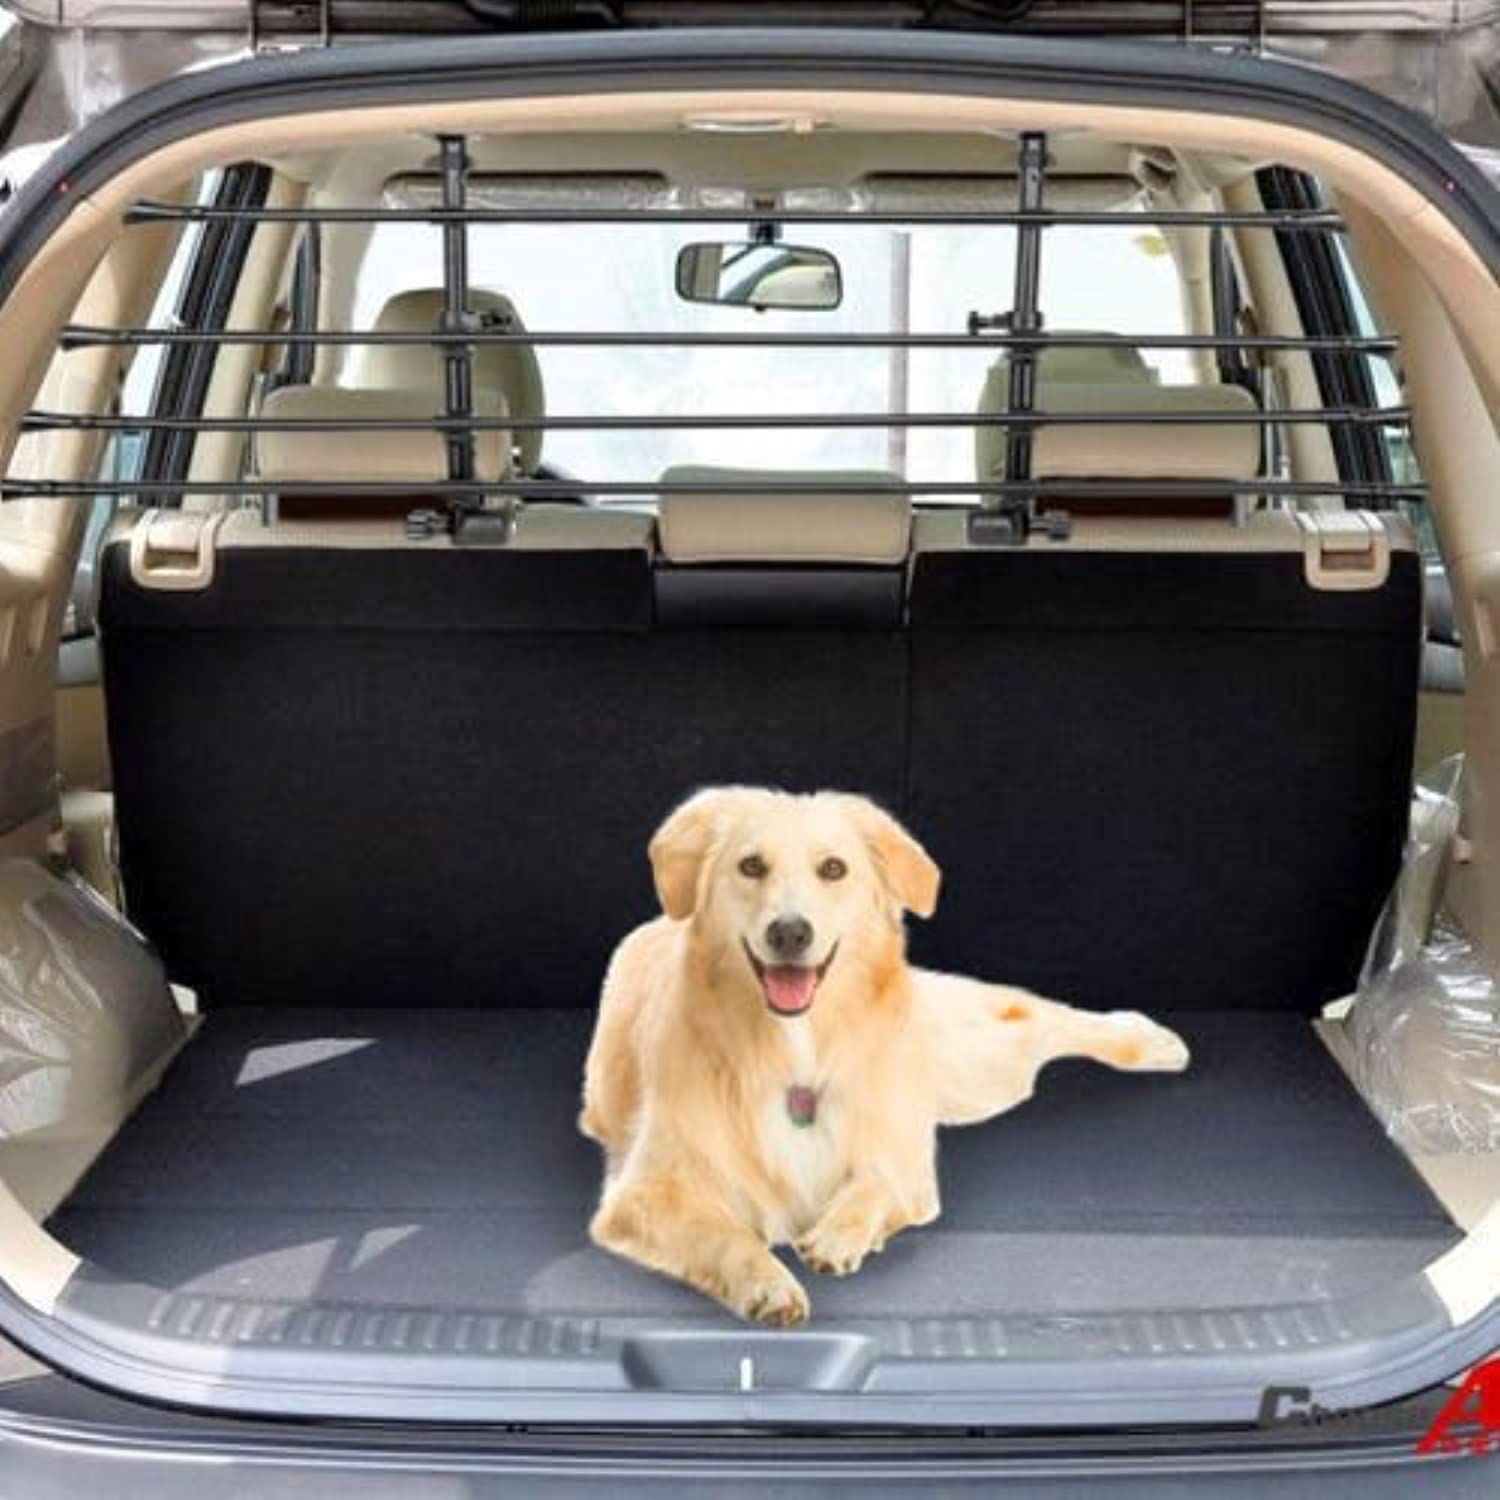 LAND ROVER RANGE ROVER SPORT (2008 on) Deluxe Rear Headrest Pet Dog Guard Adjustable Safety Barrier